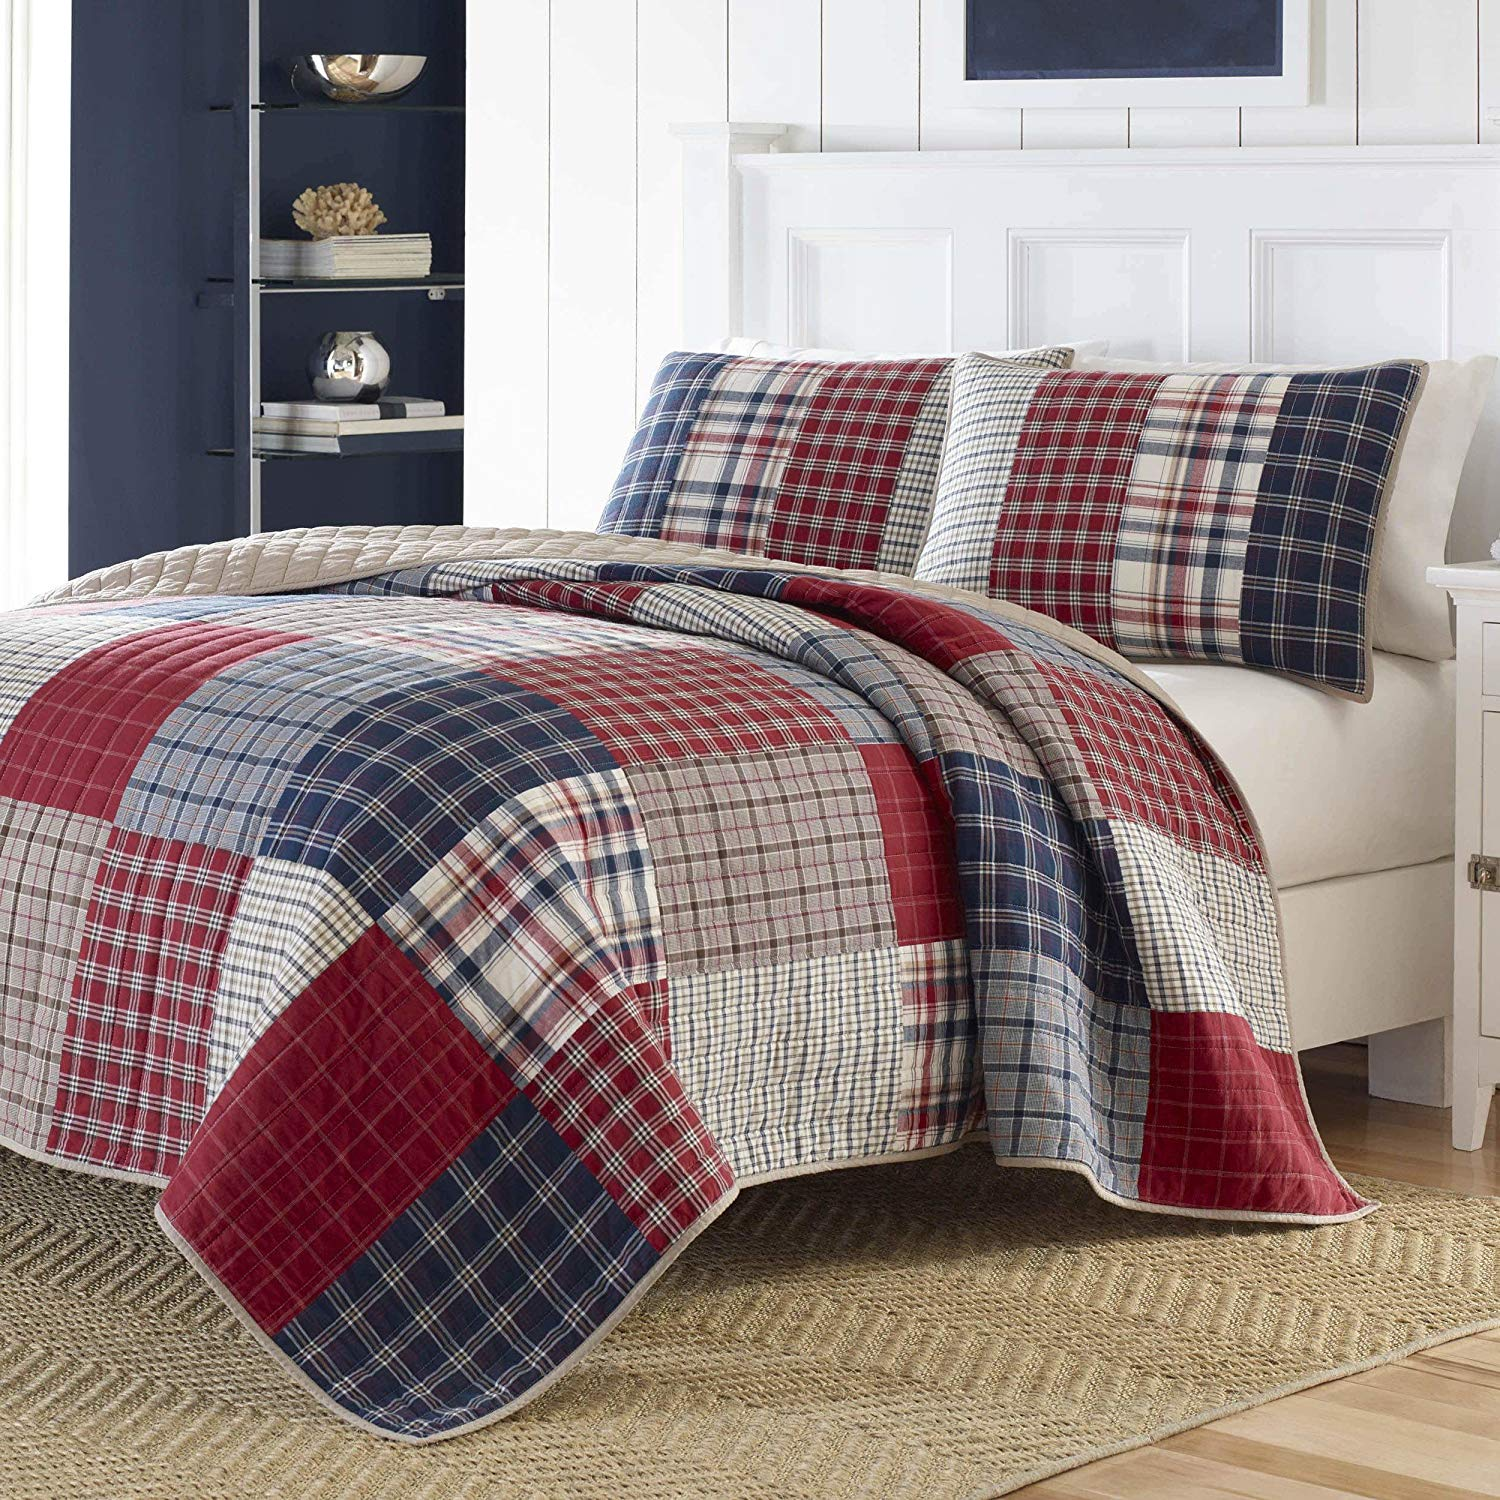 Cheap Patchwork Quilt King Size Find Patchwork Quilt King